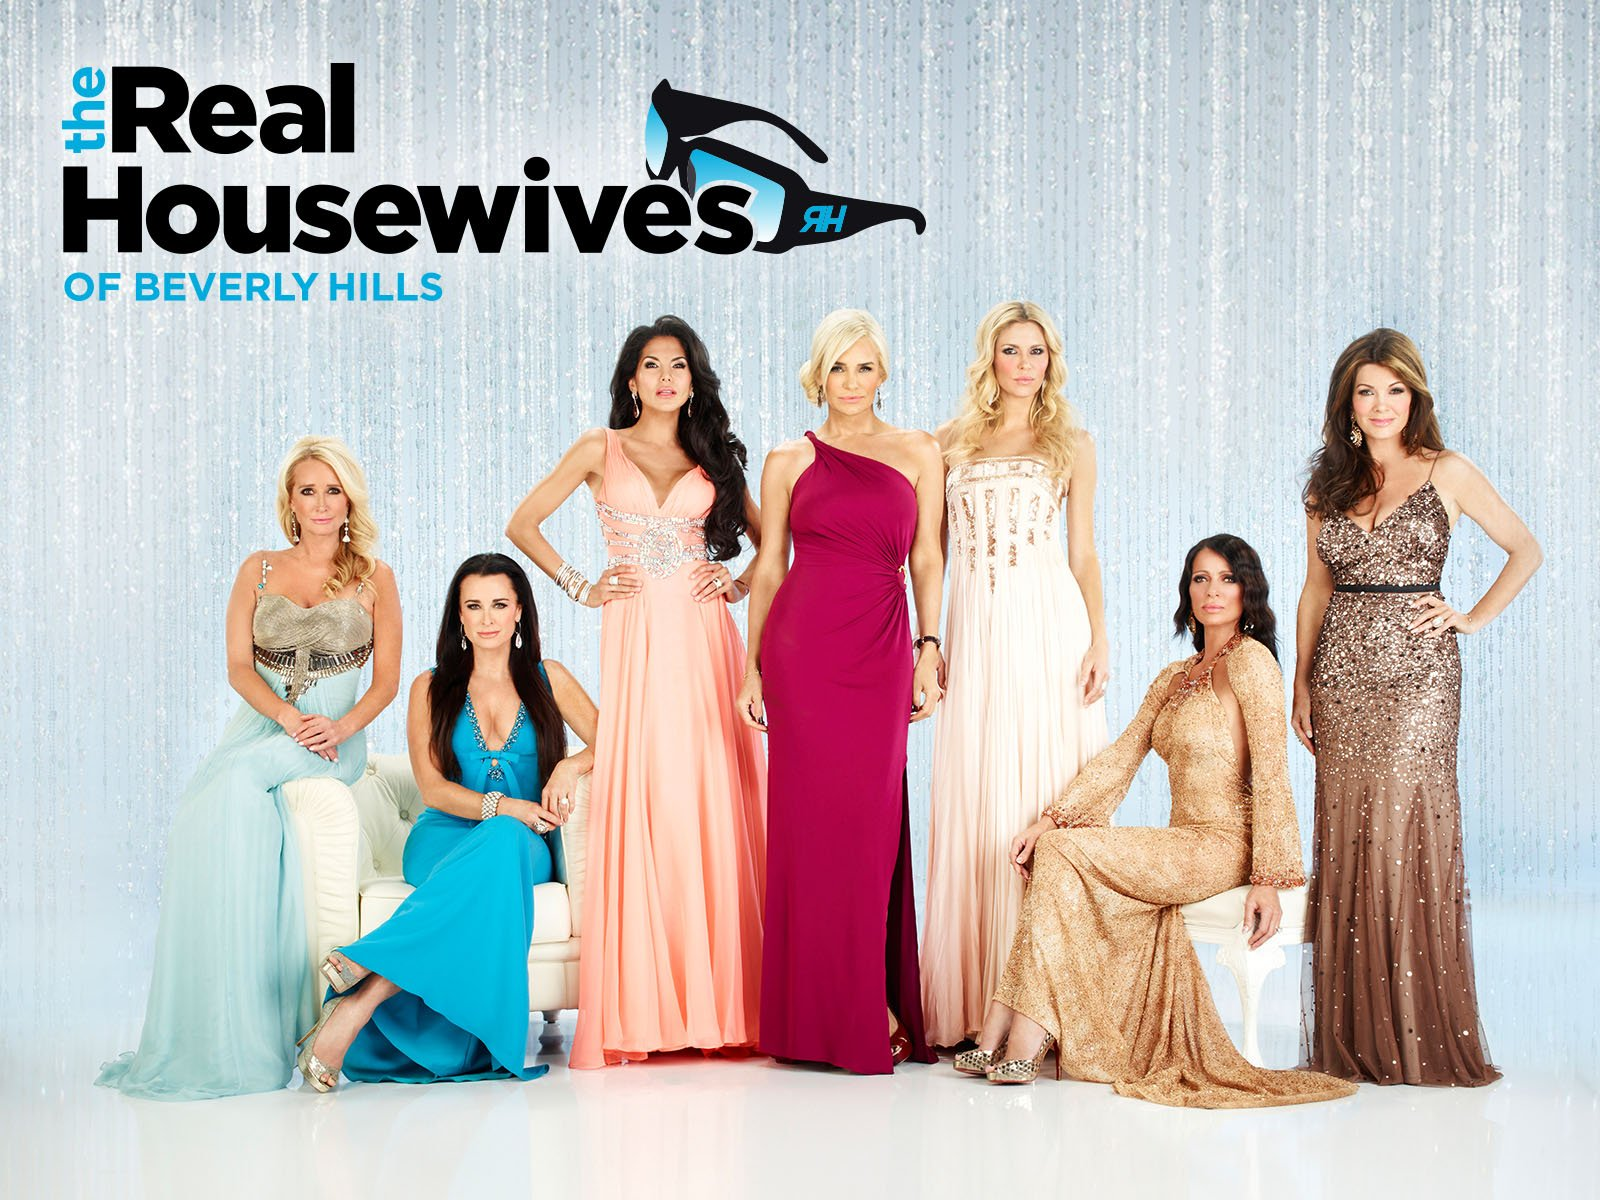 real housewives of beverly hills season 9 stream free